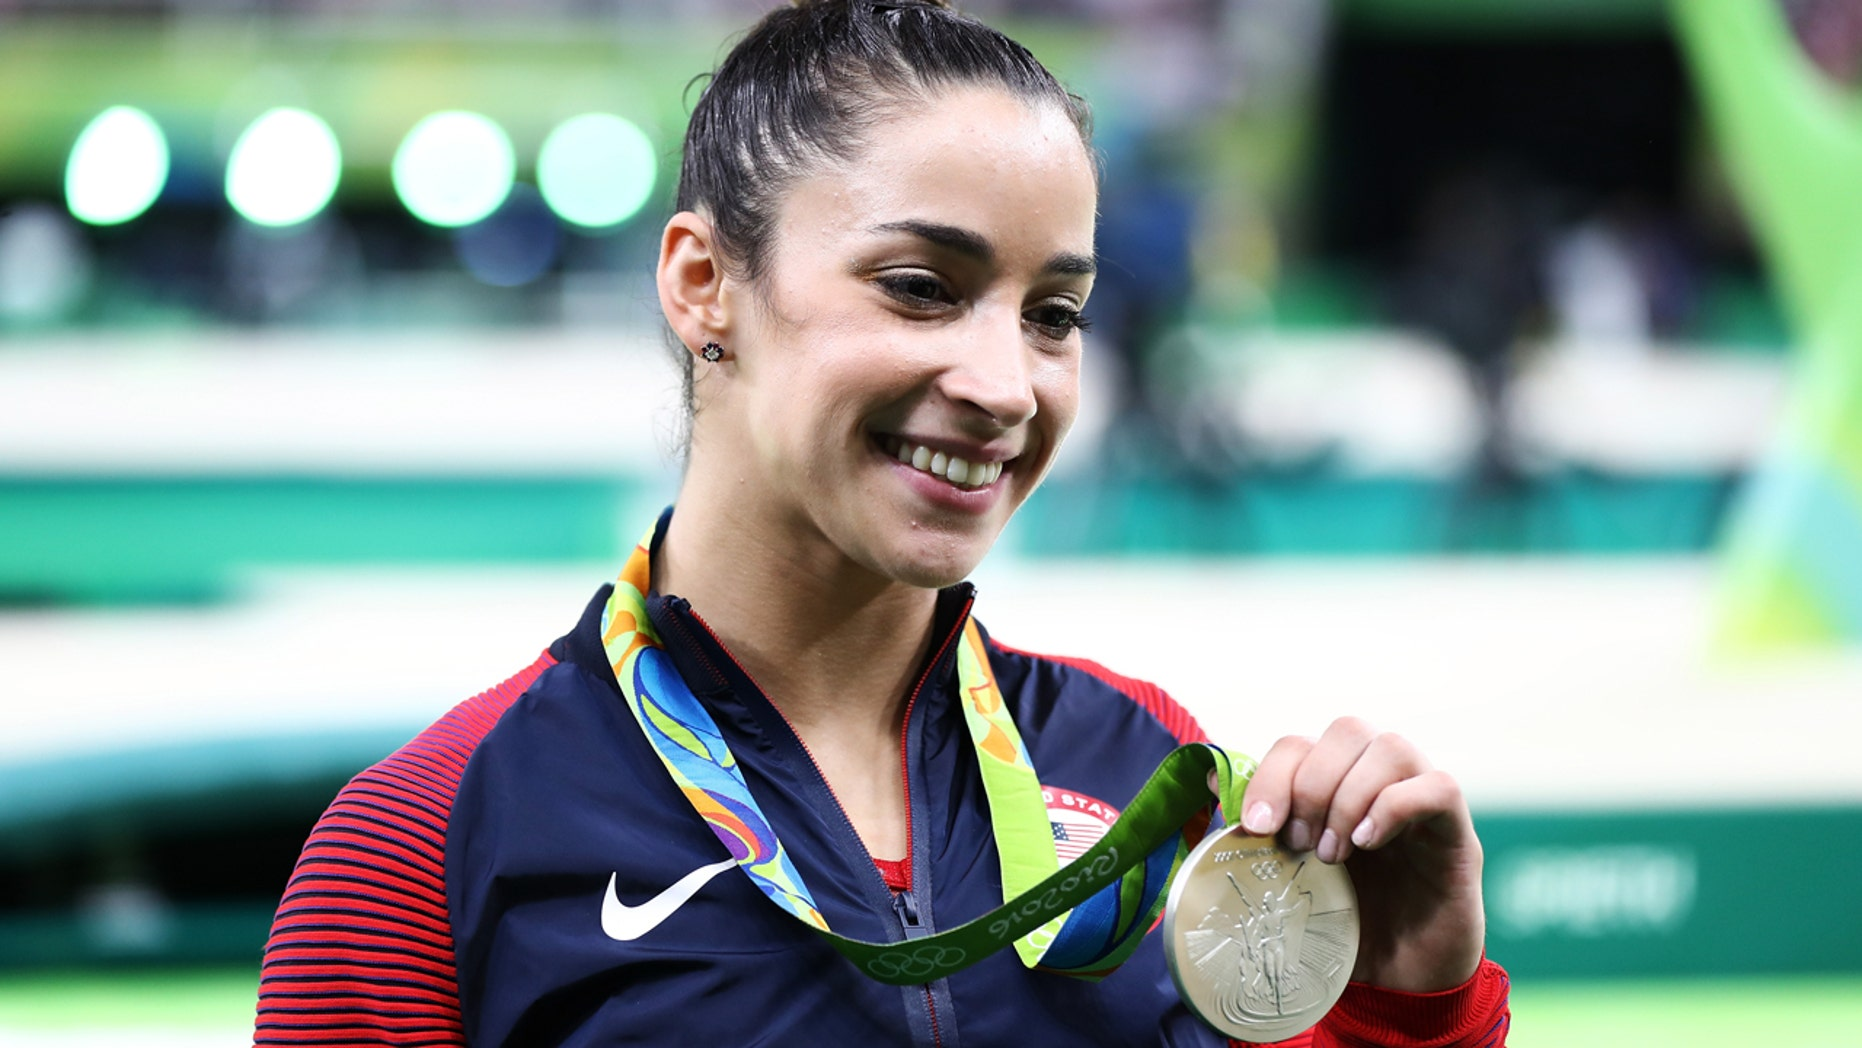 Silver medalist Alexandra Raisman of the United States poses for photographs after the medal ceremony for the Women's Individual All Around on Day 6 of the 2016 Rio Olympics at Rio Olympic Arena on August 11, 2016 in Rio de Janeiro, Brazil.